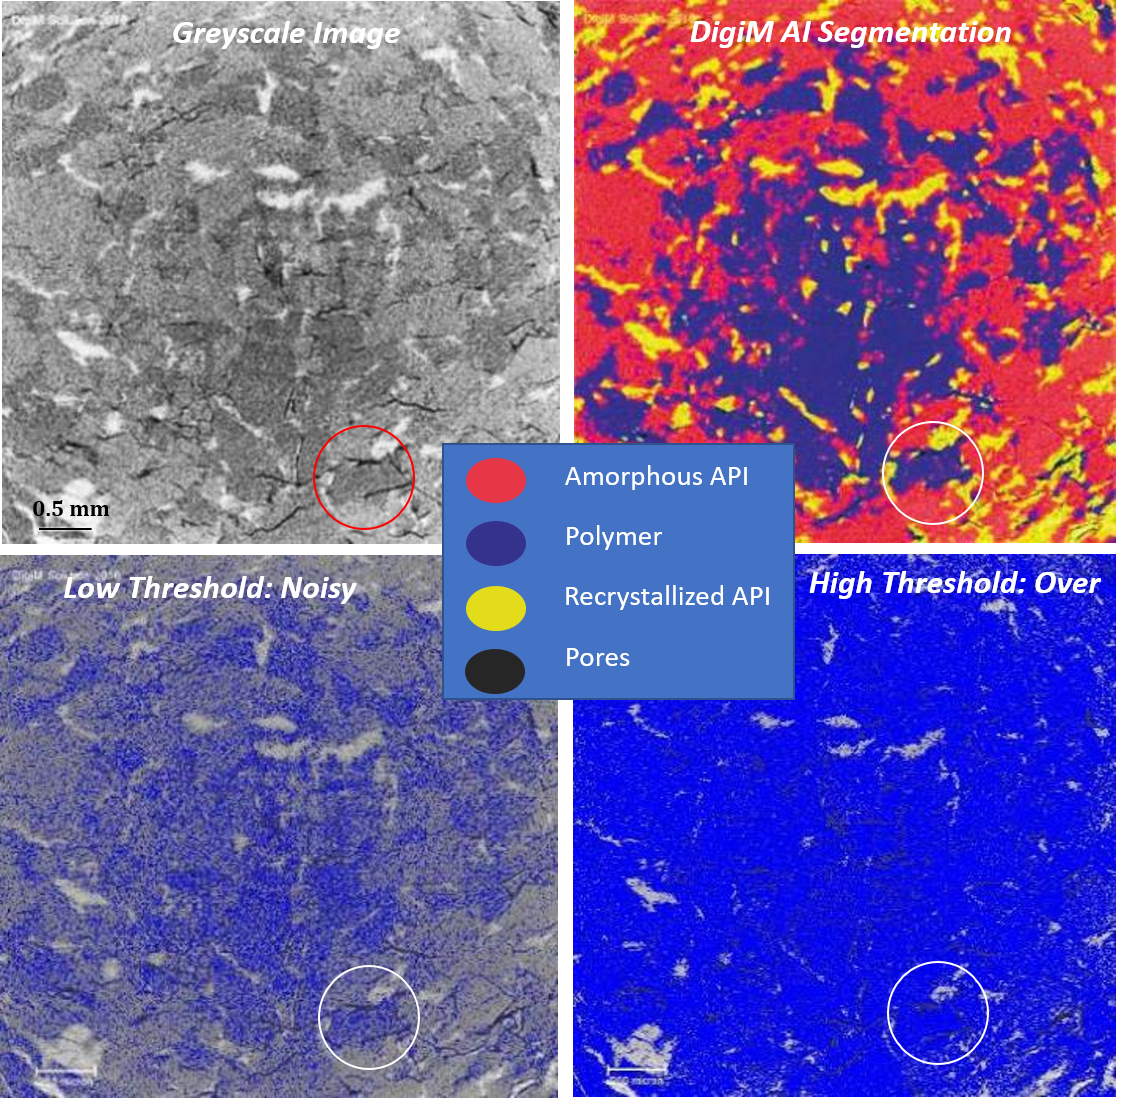 DigiM AI image analytics detecting recrystallization in an amorphous solid dispersion